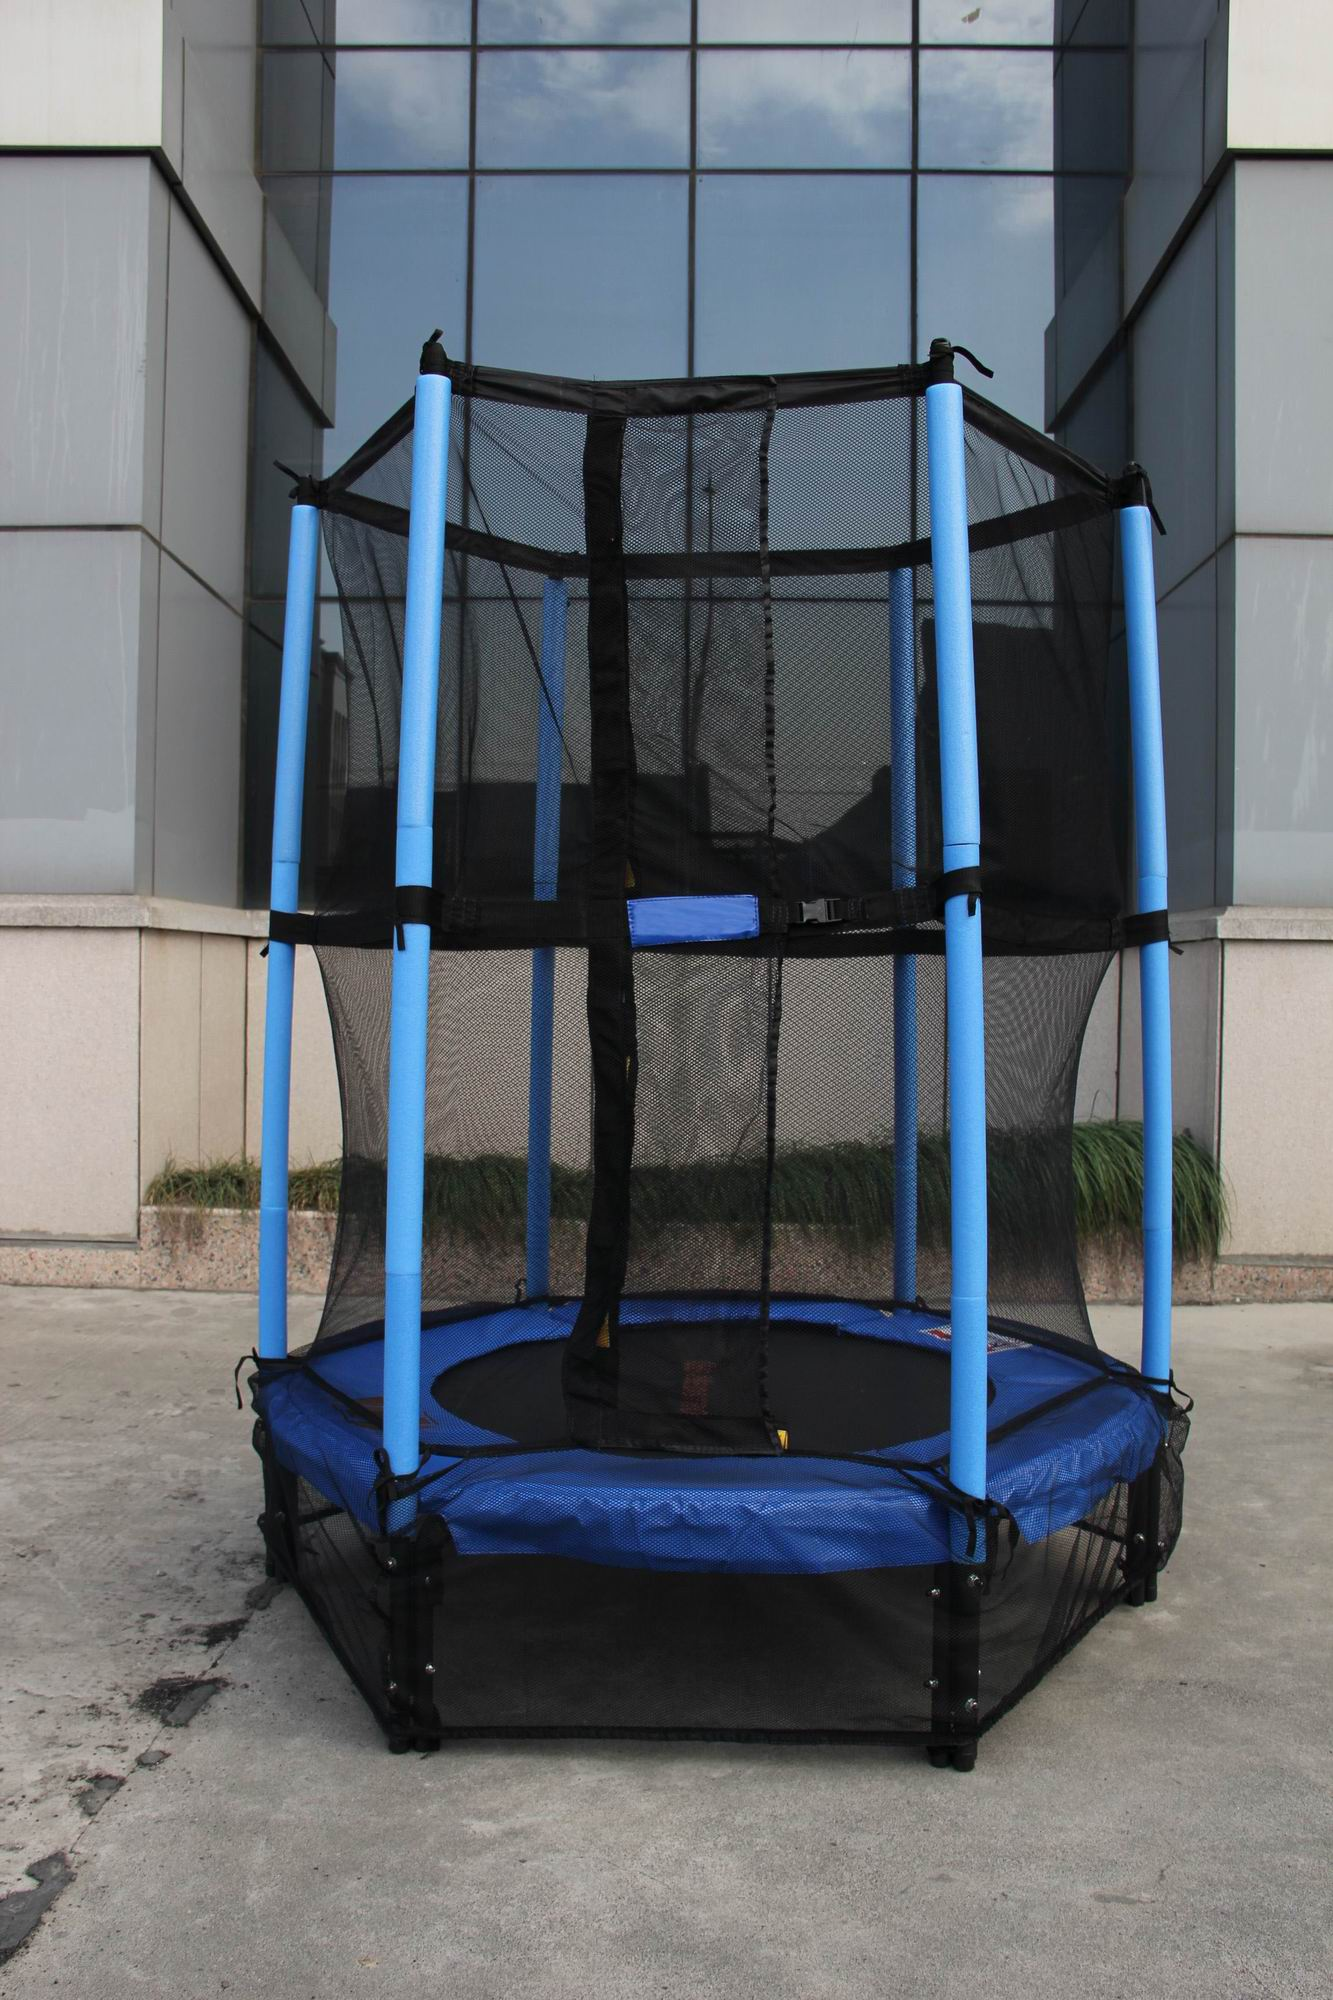 4 5ft Springless Mini Trampoline With Enclosure Set For